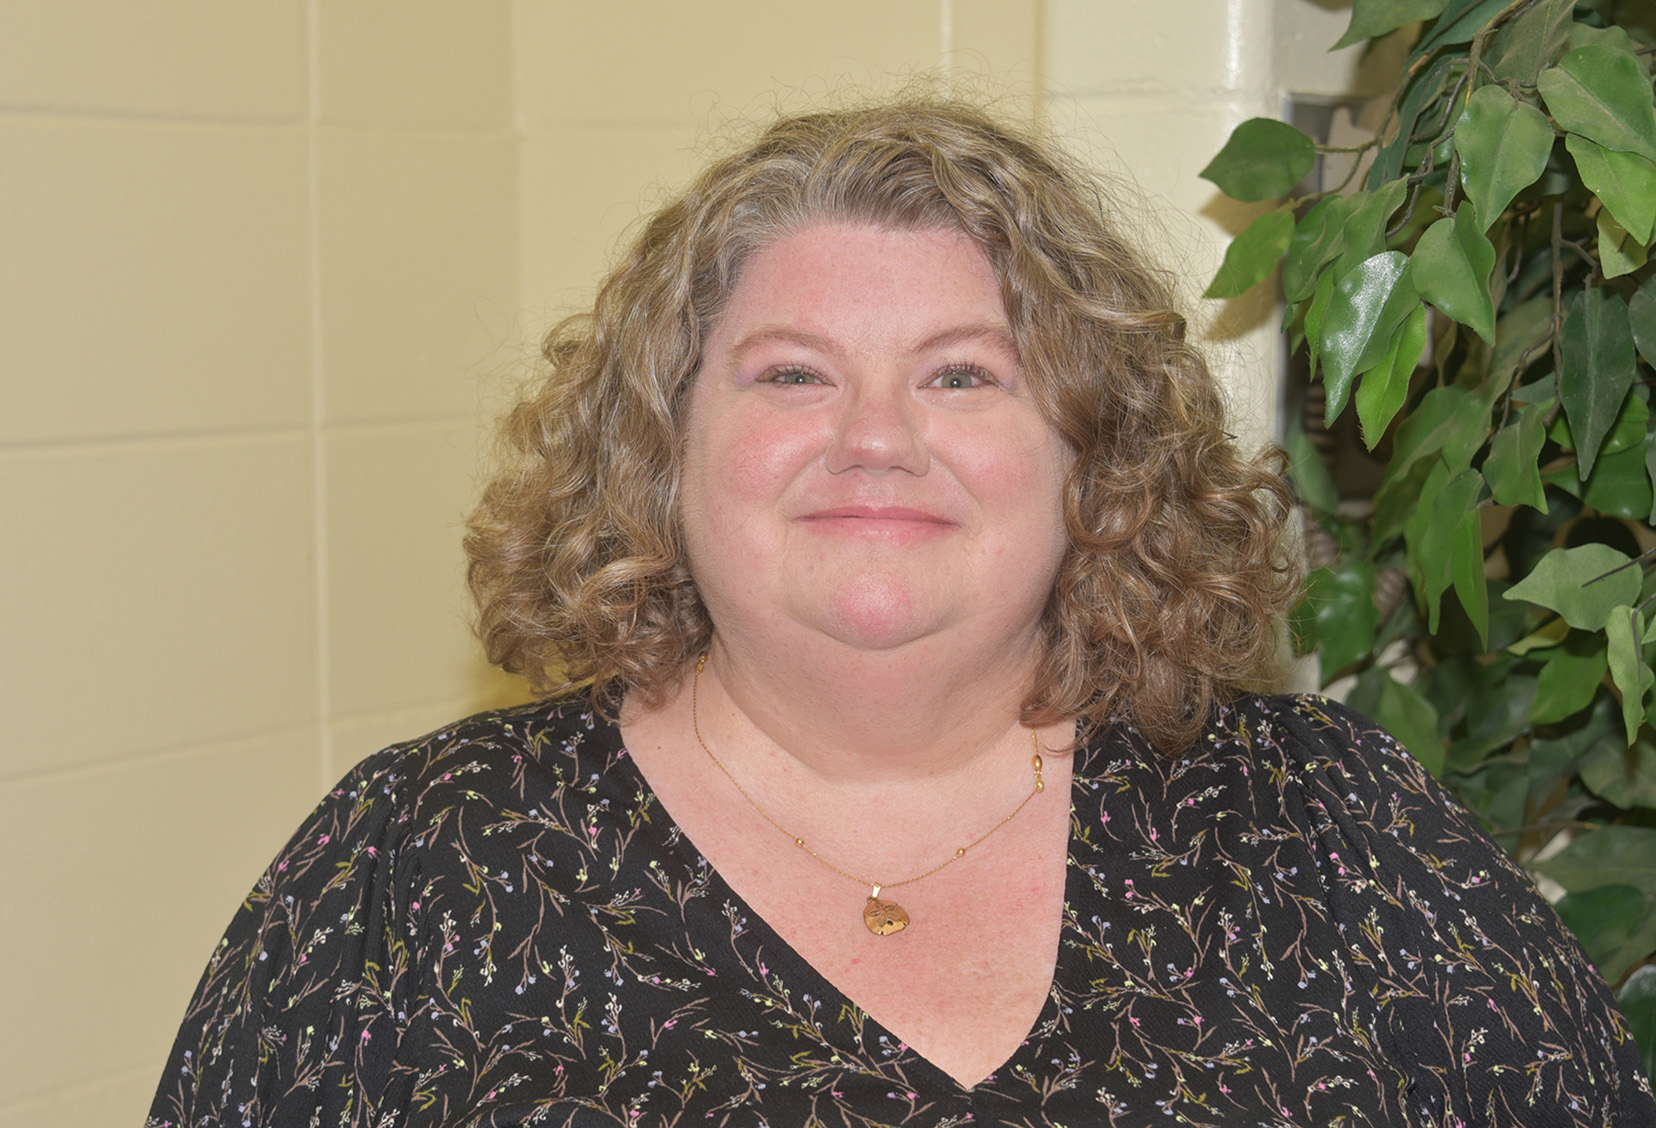 Dr. Amy Habeger, Associate Professor of Social Work, is the primary investigator of a four-year $1.9 million grant that will provide MSW students with training and field experiences in Sussex County, Del,, a part of the state that has been identified as a high demand area for behavioral health resources.